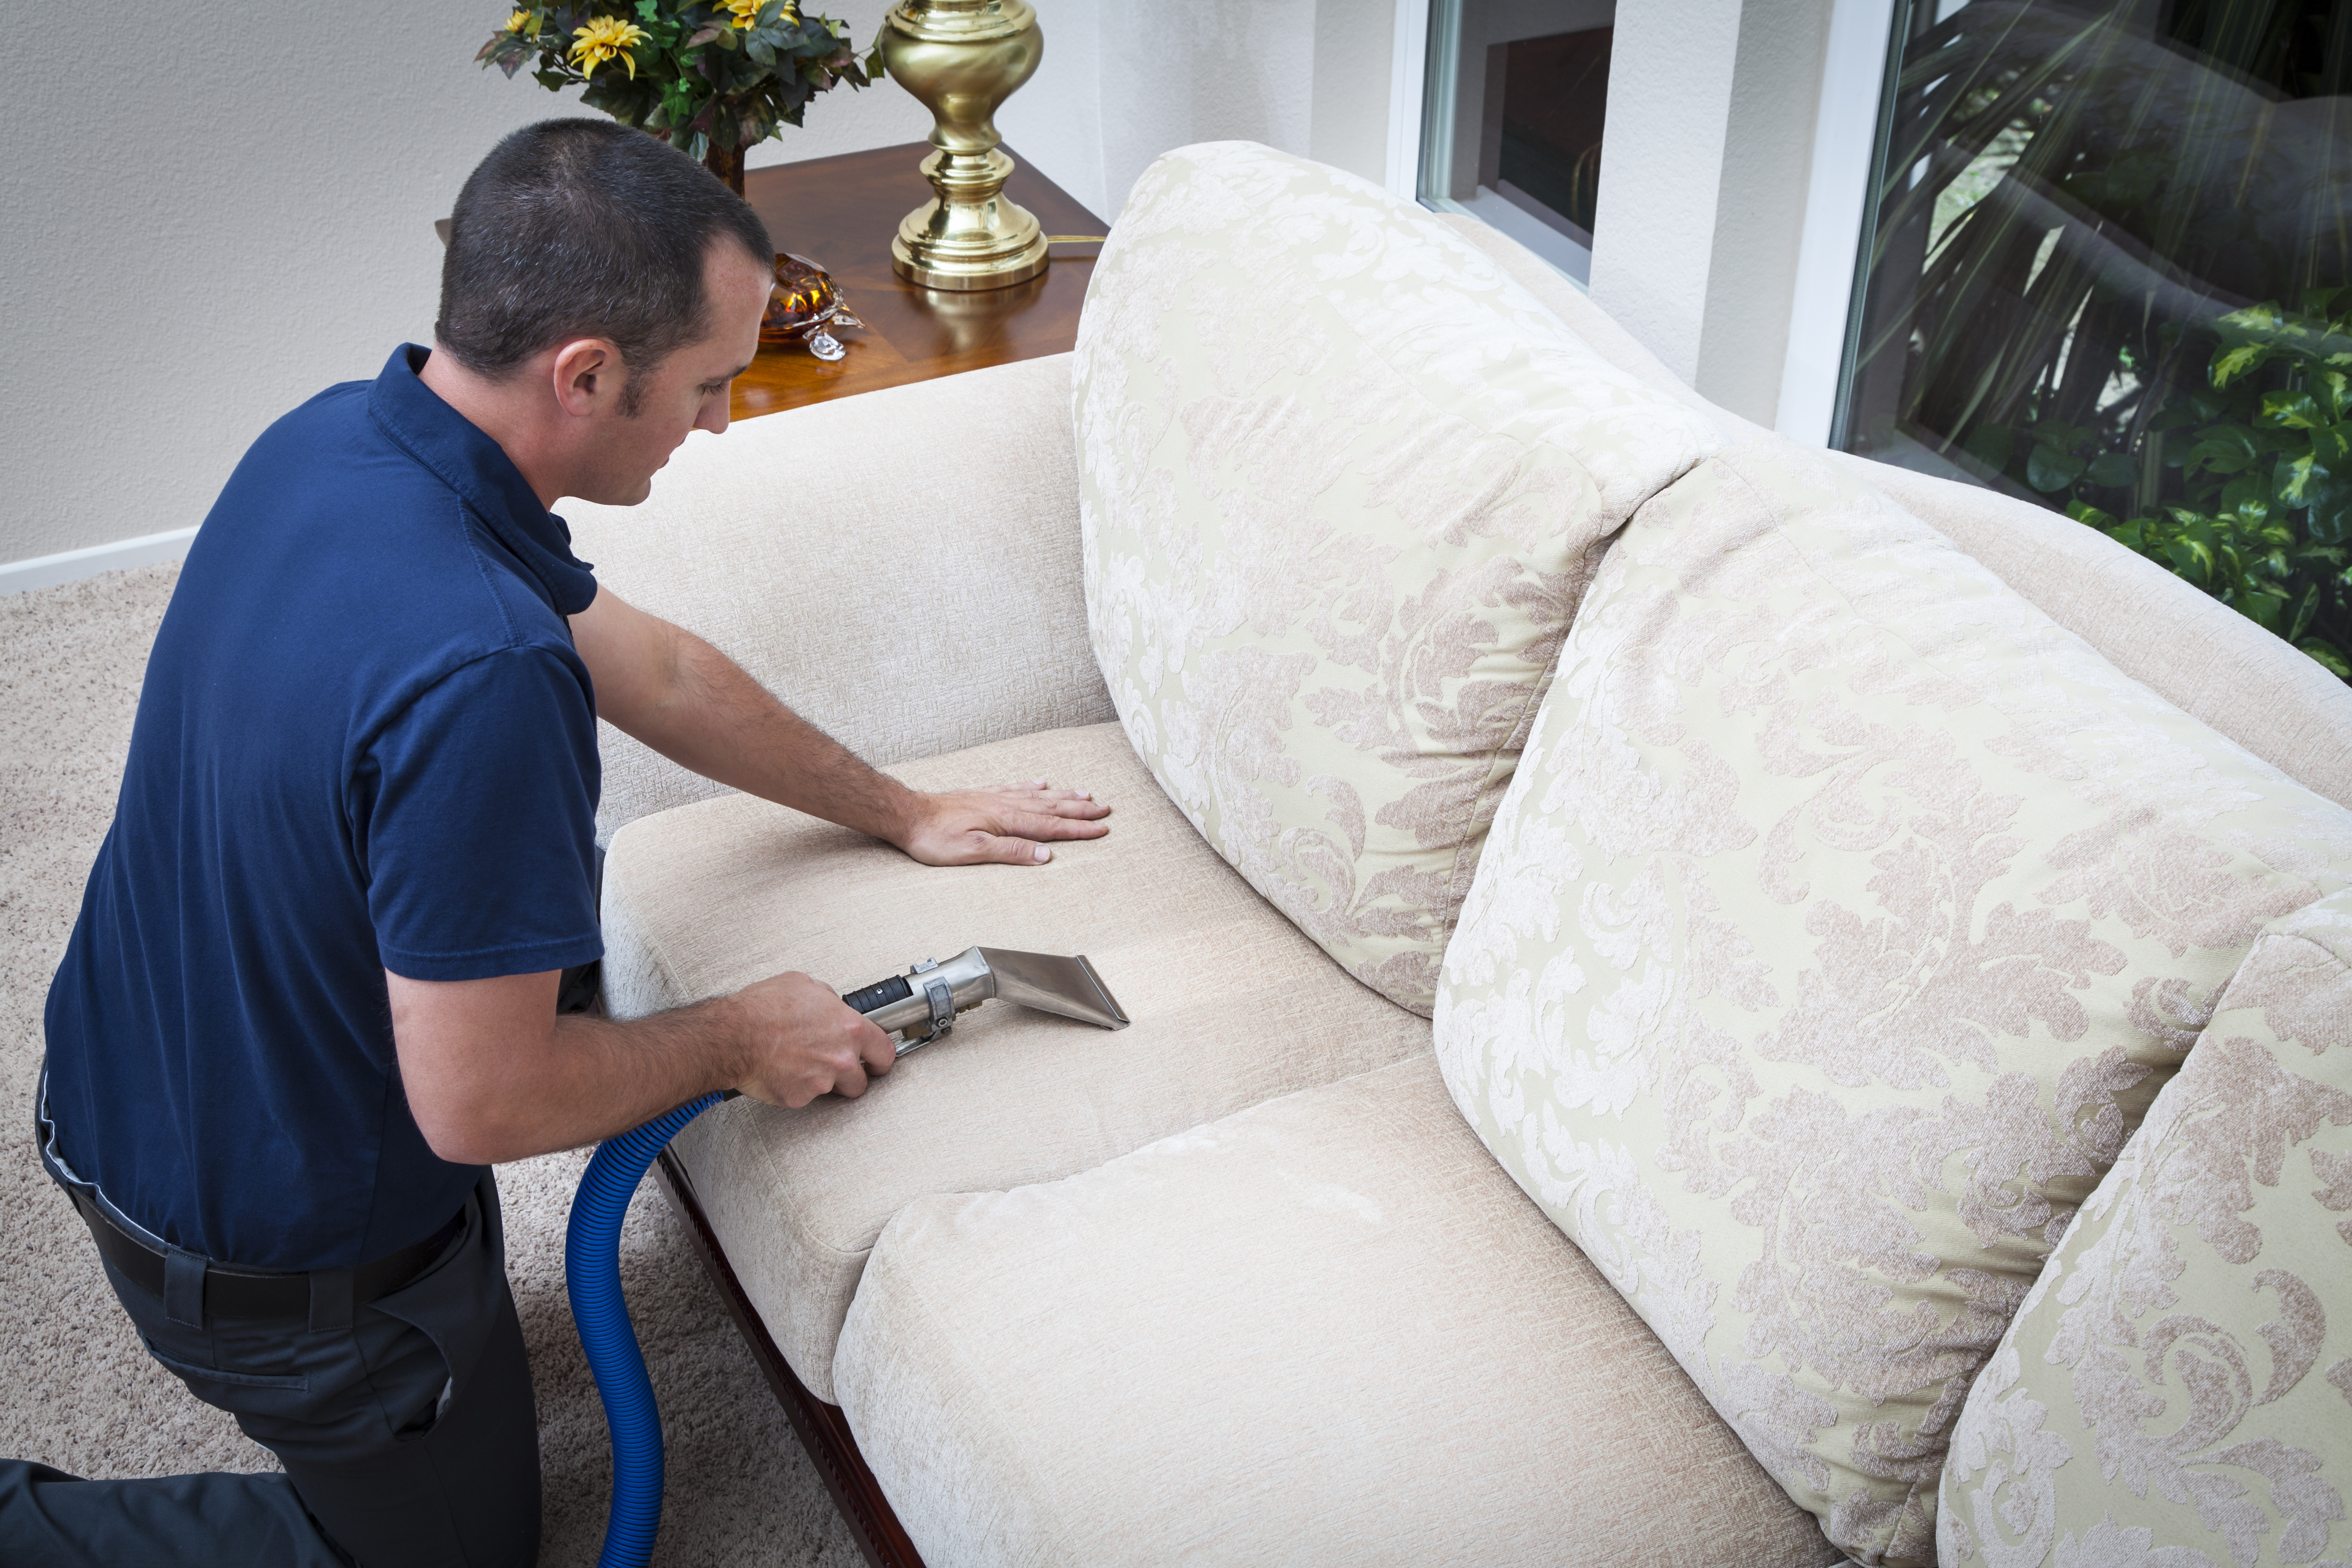 Stupendous How To Get Rid Of Ballpoint Writing On A Leather Sofa Home Onthecornerstone Fun Painted Chair Ideas Images Onthecornerstoneorg